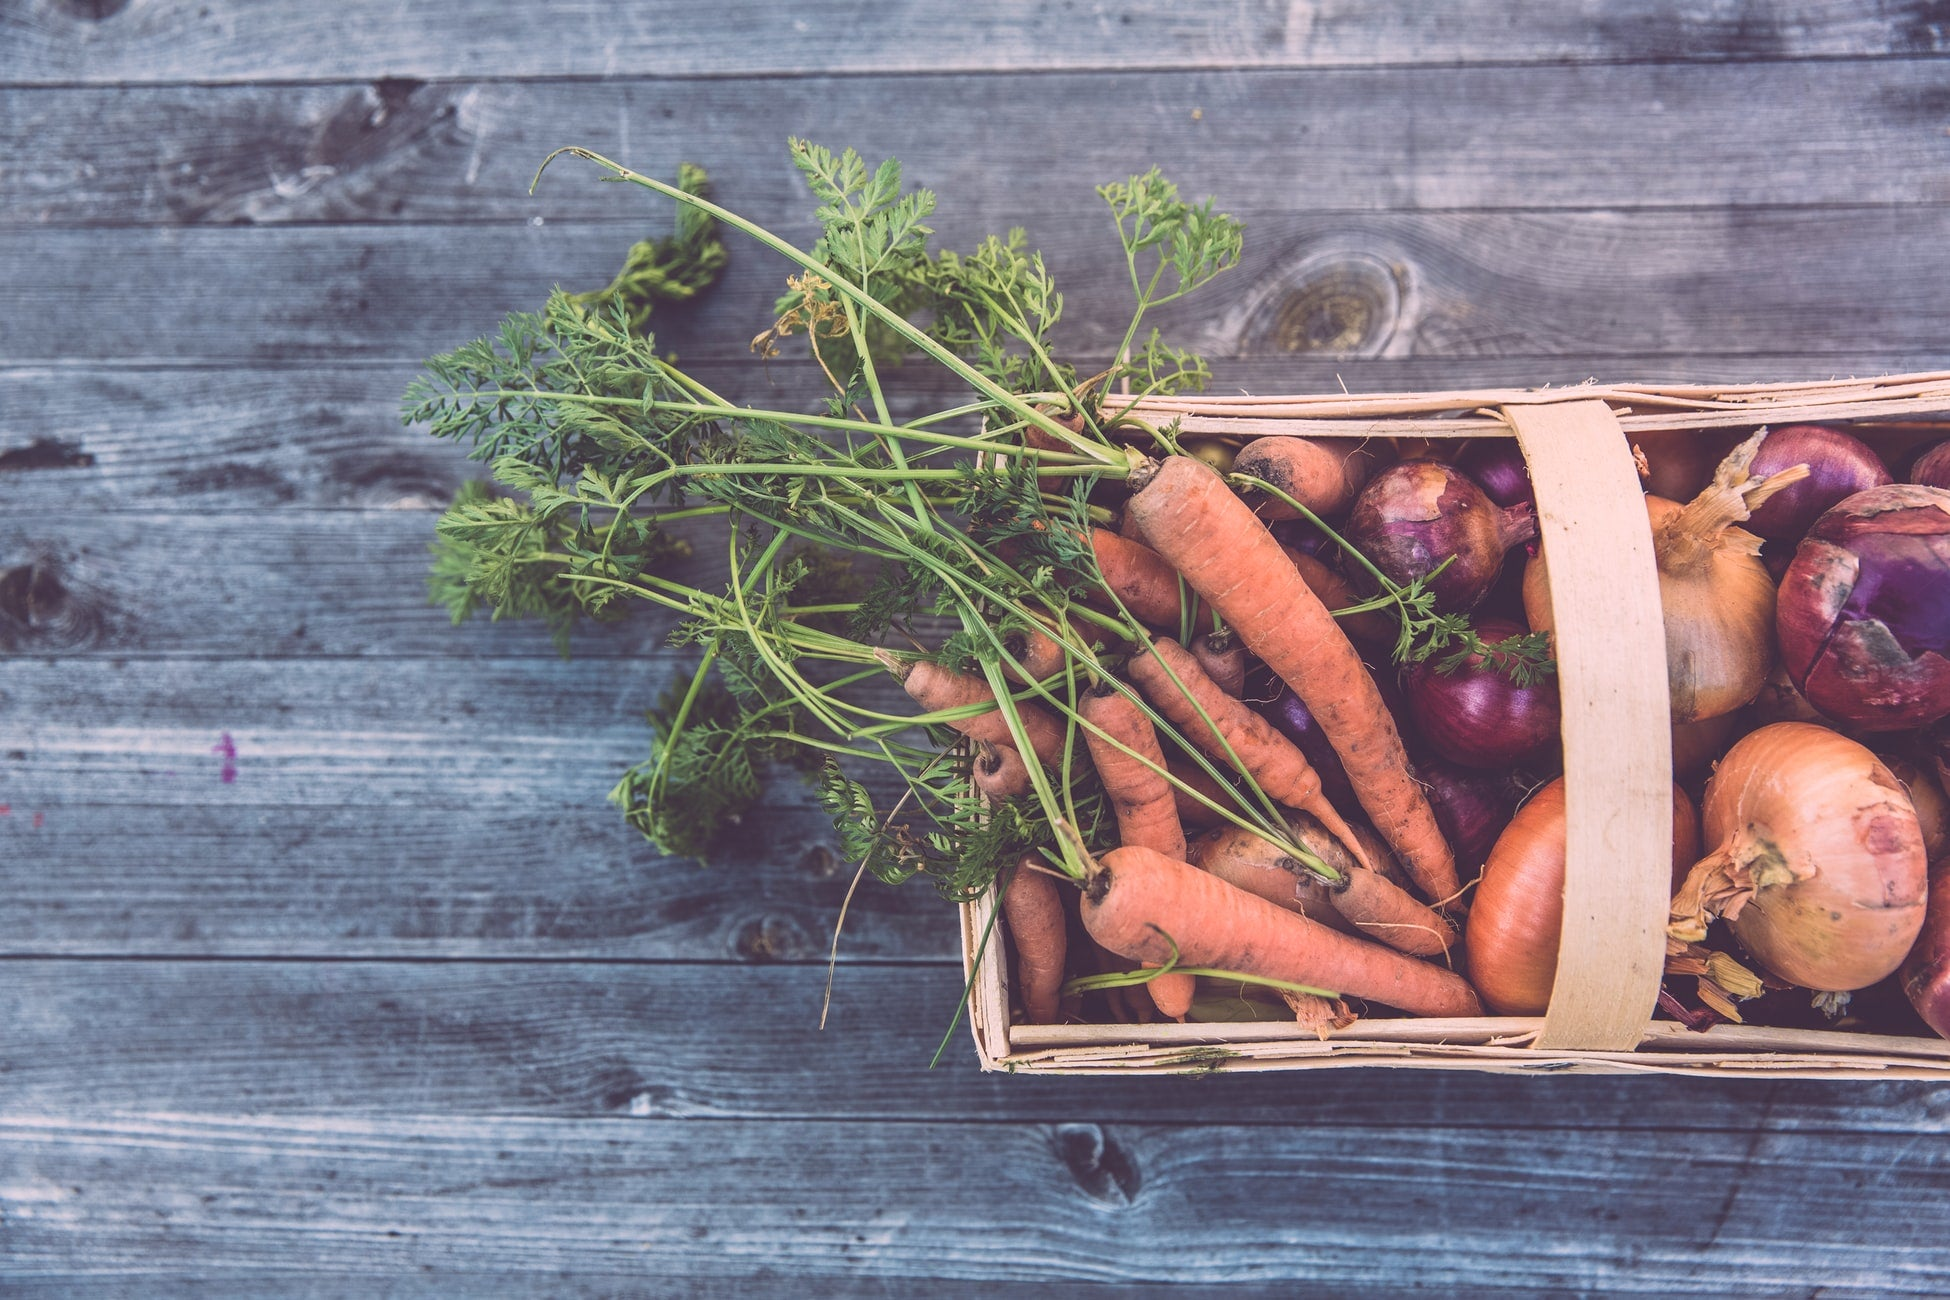 carrots and onions in a hamper